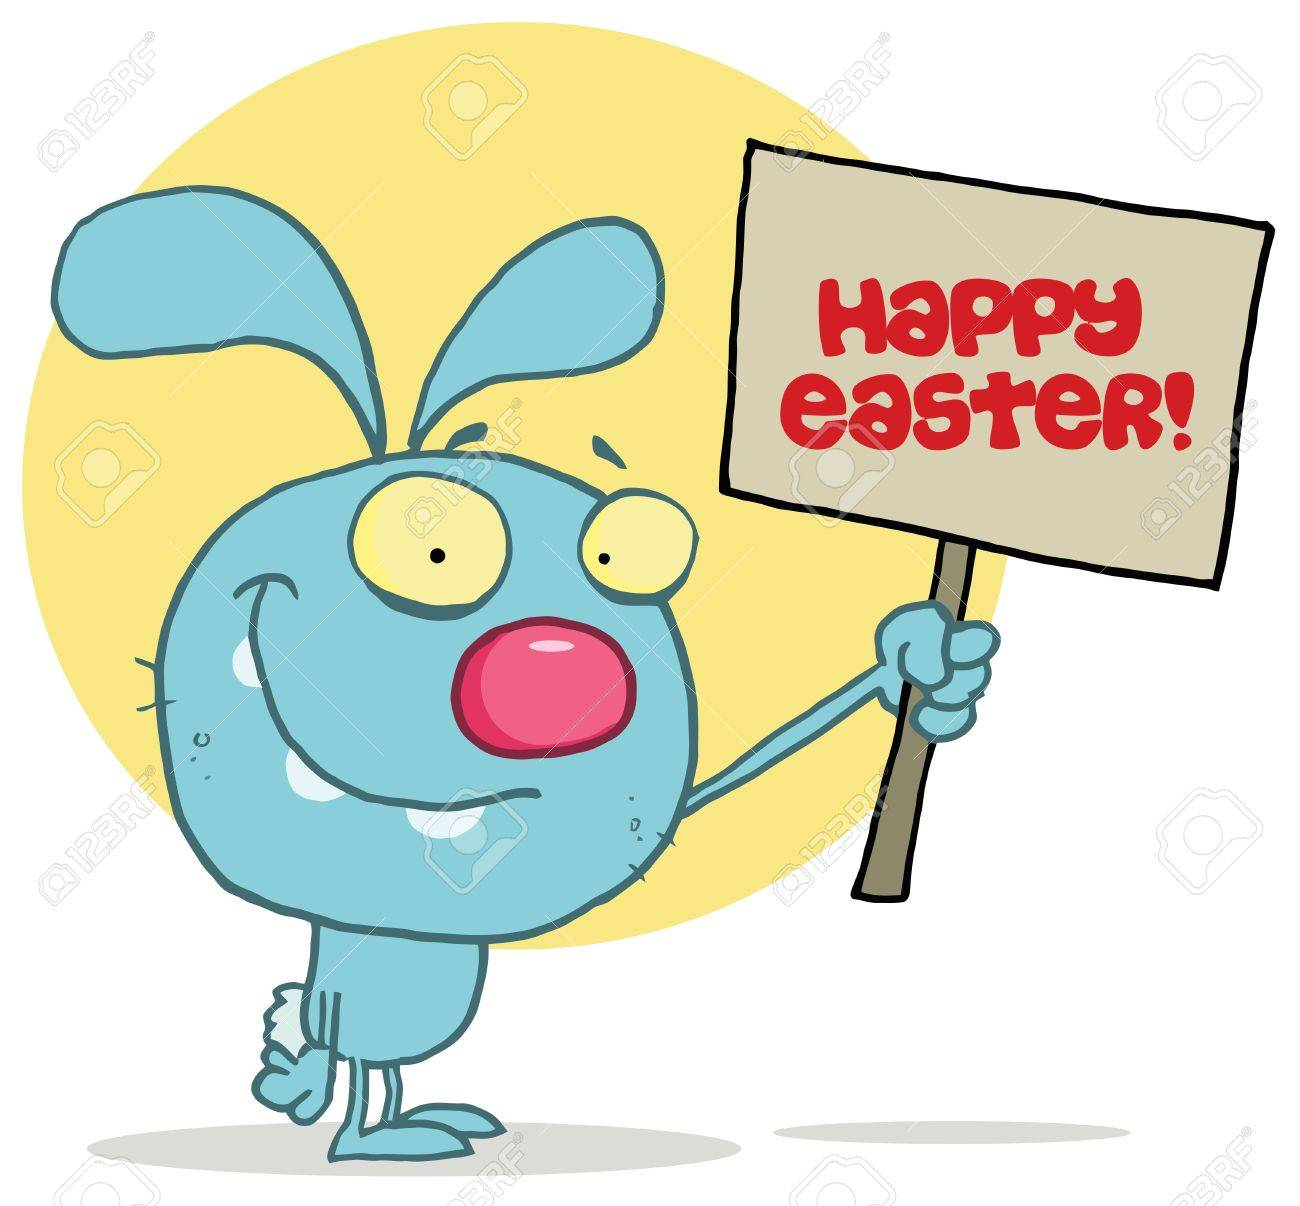 Easter rabbit holds Happy Easter! sign Stock Vector - 6906090